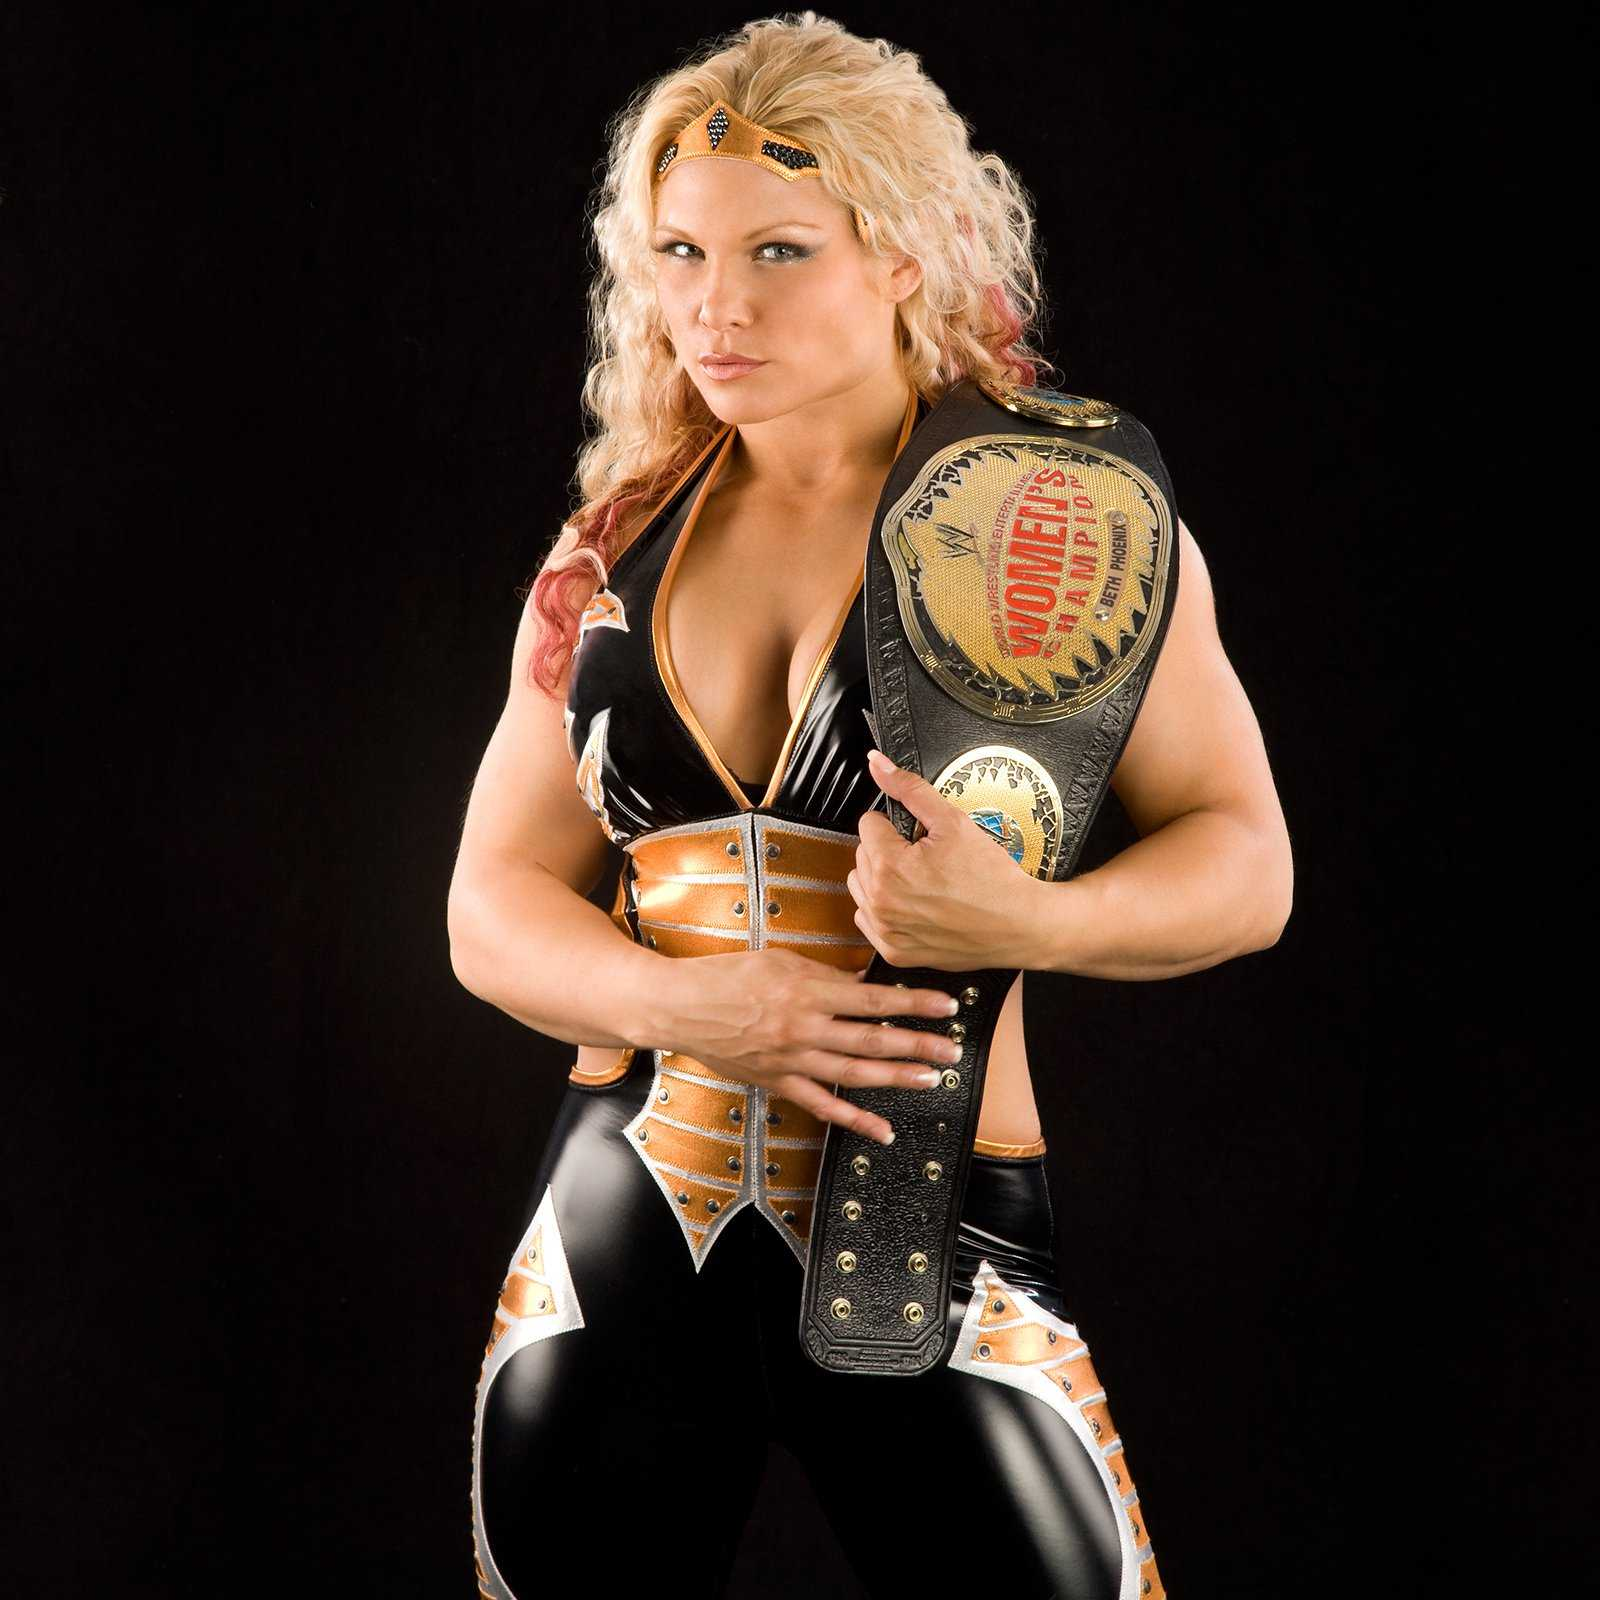 Beth Phoenix sexy cleavage pic